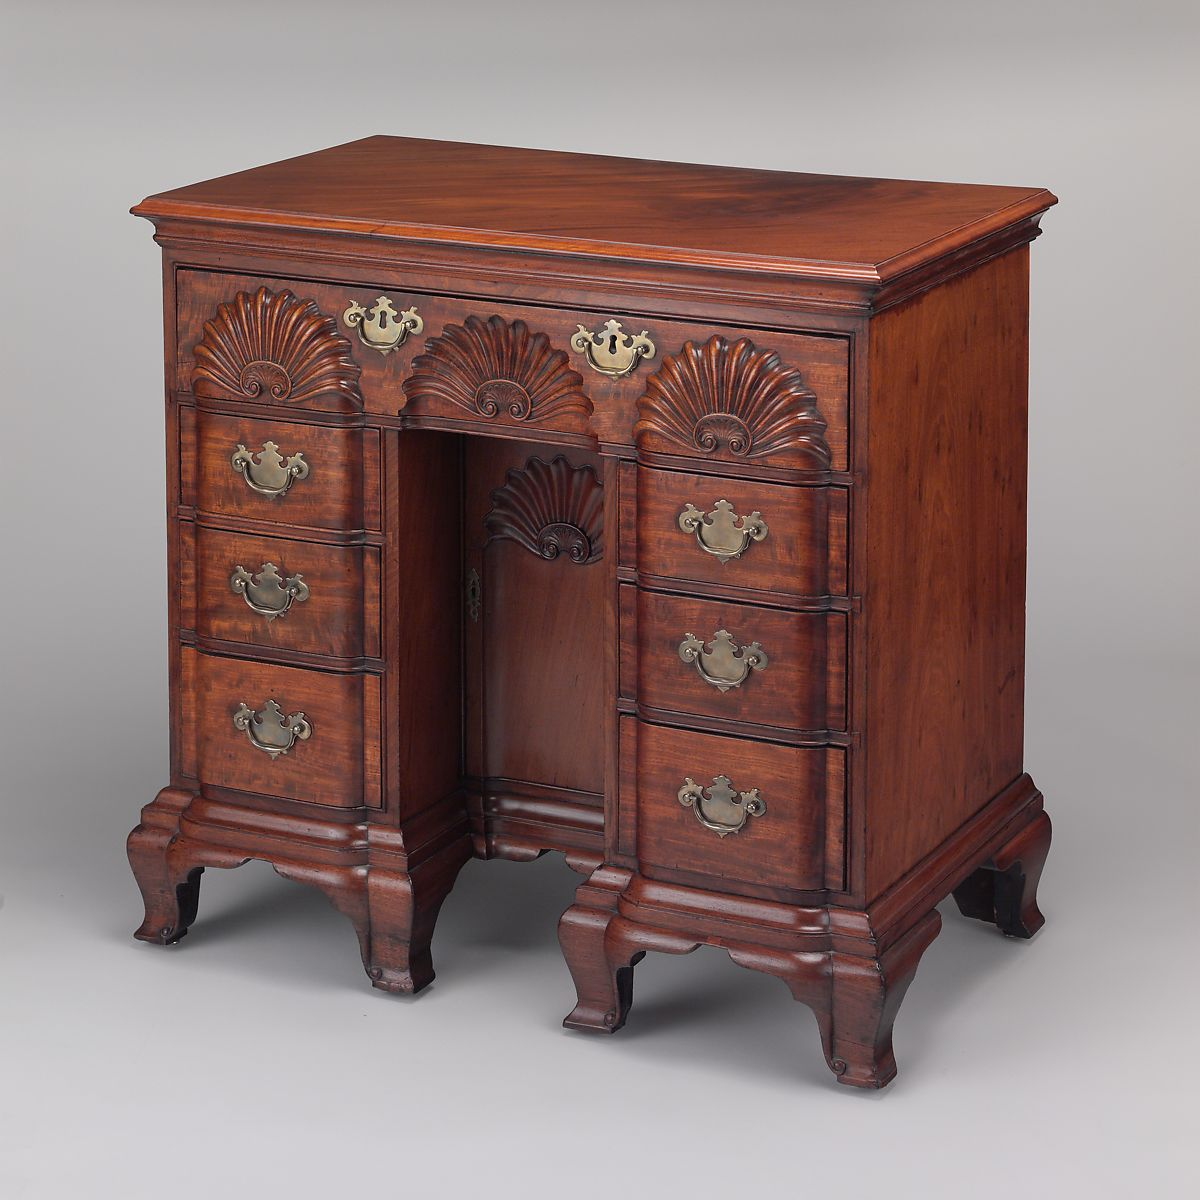 Bureau table, Attributed to John Townsend (1732–1809), Mahogany, chestnut, tulip poplar, American